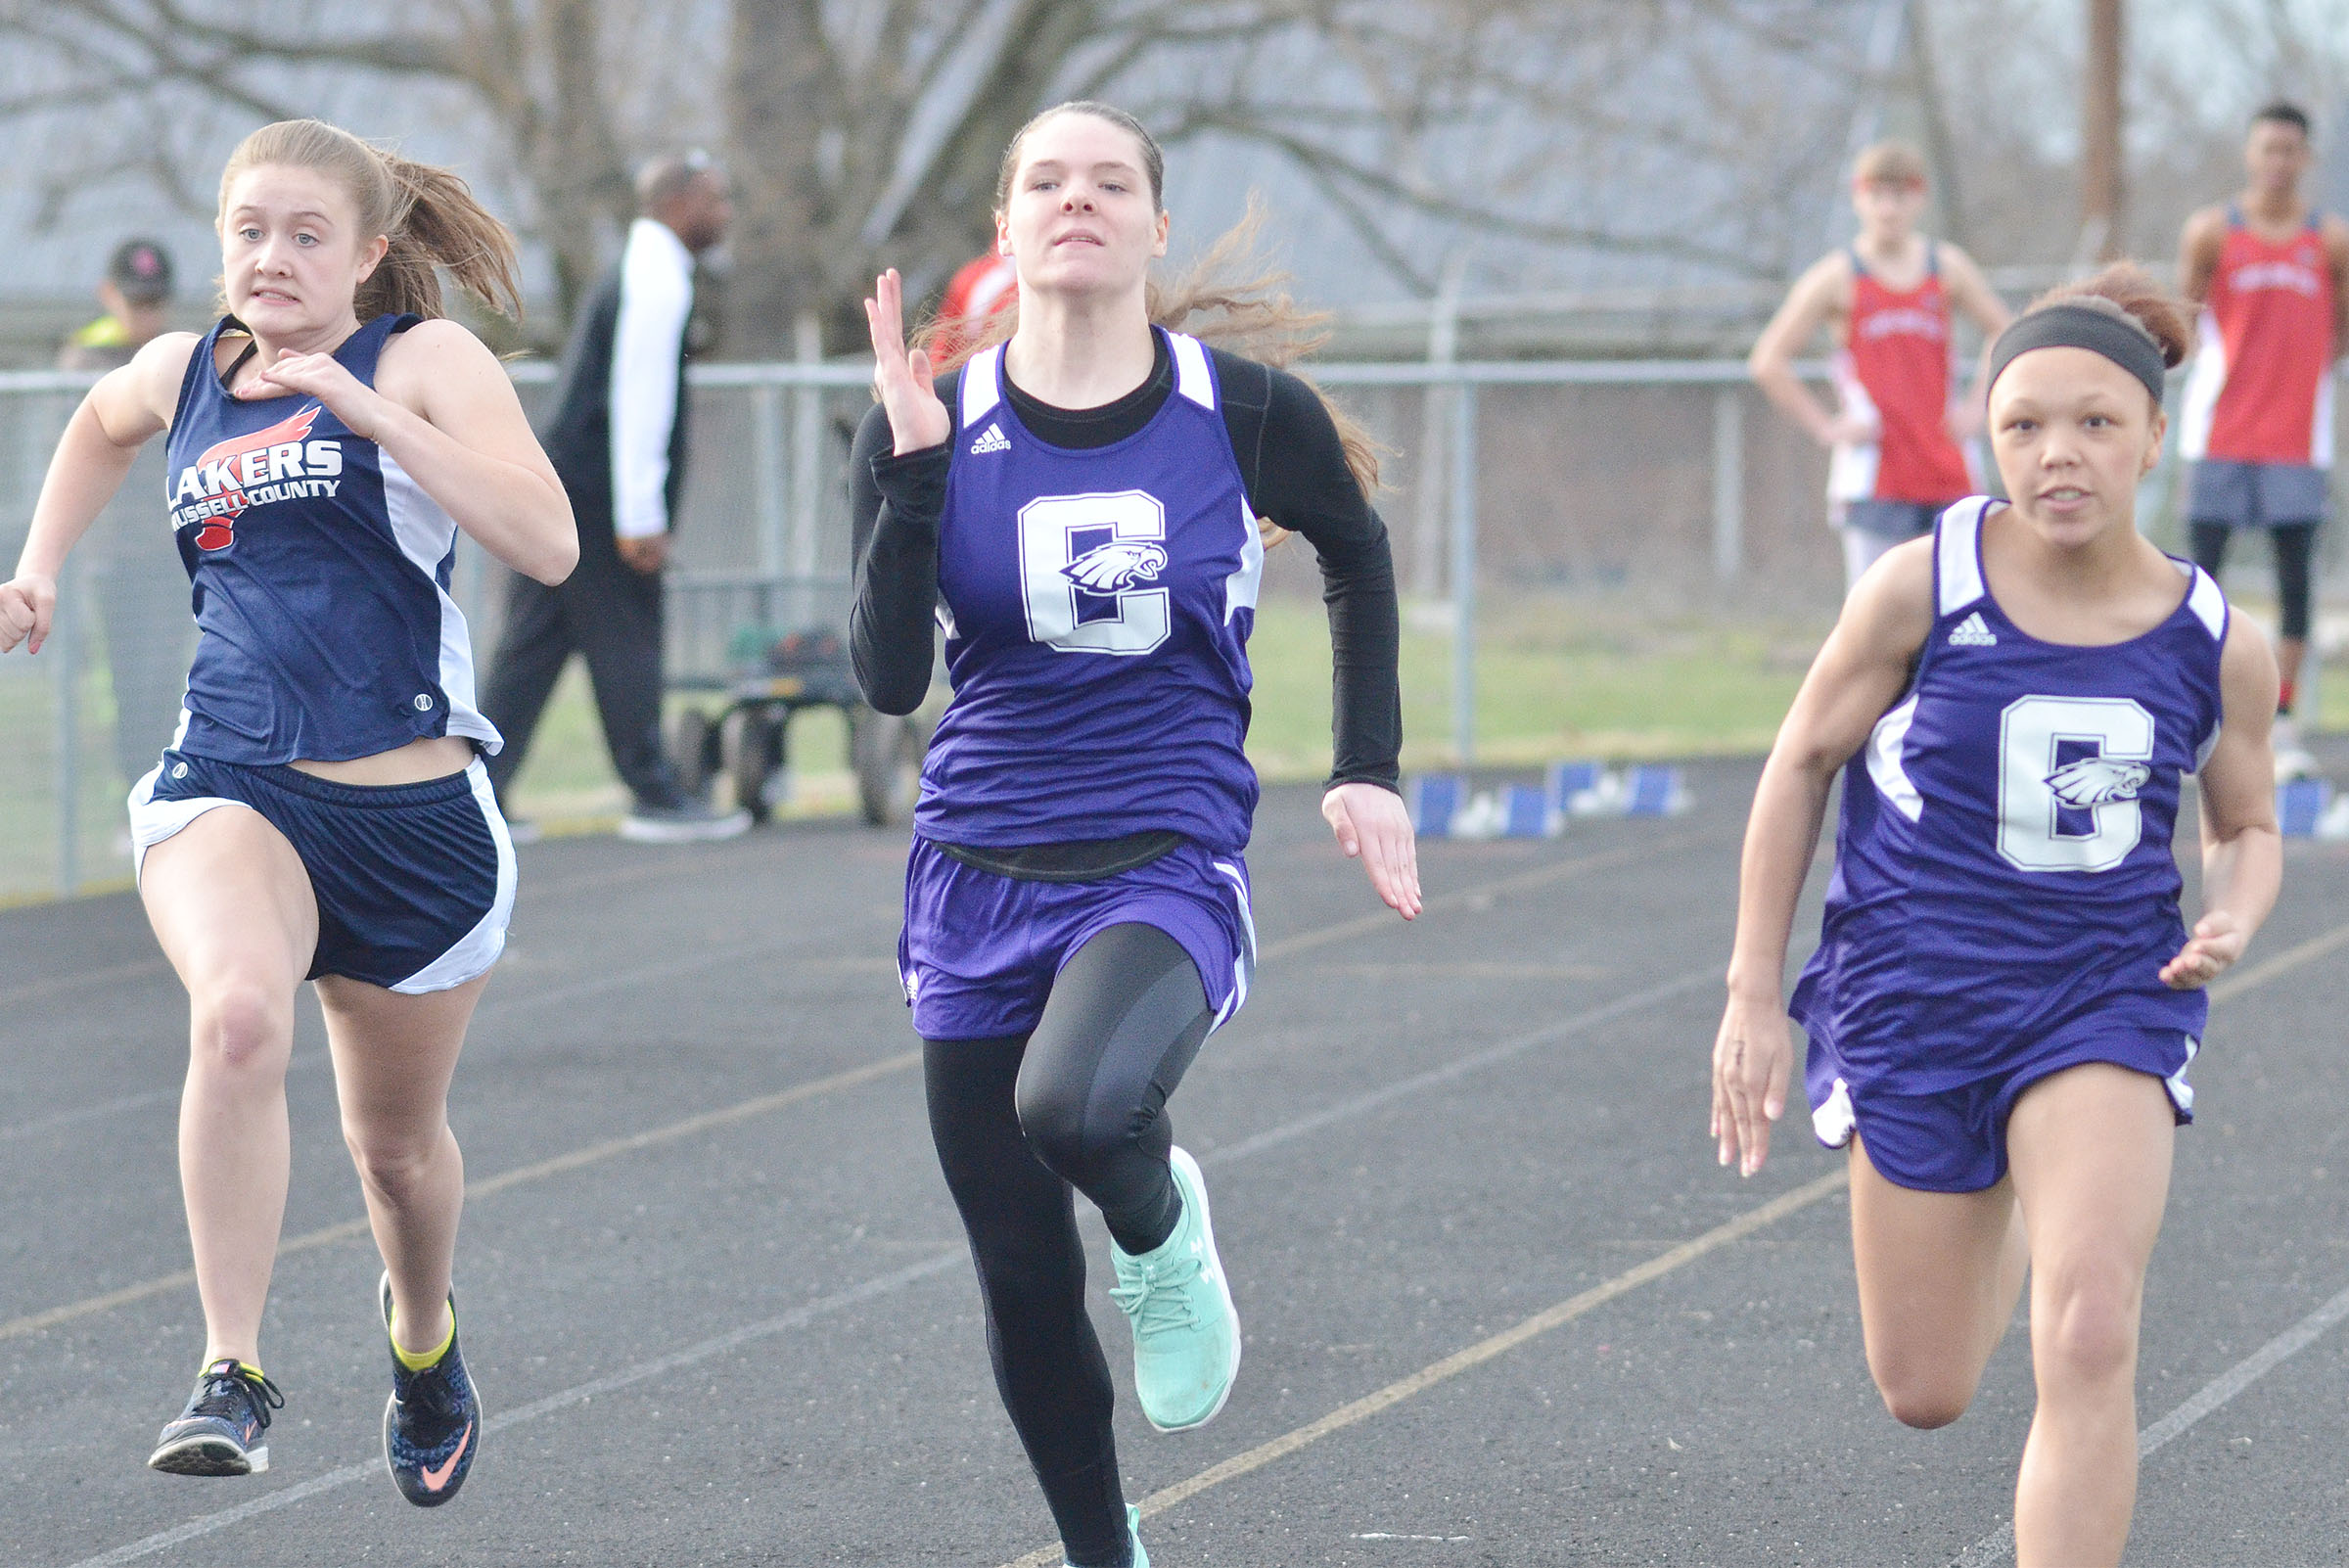 Campbellsville Middle School track team picked up several wins at a meet in Green County on Monday, April 24. Seventh-grader Kitana Taylor, at right, finished third in the 100-meter dash and seventh in the 200-meter dash.